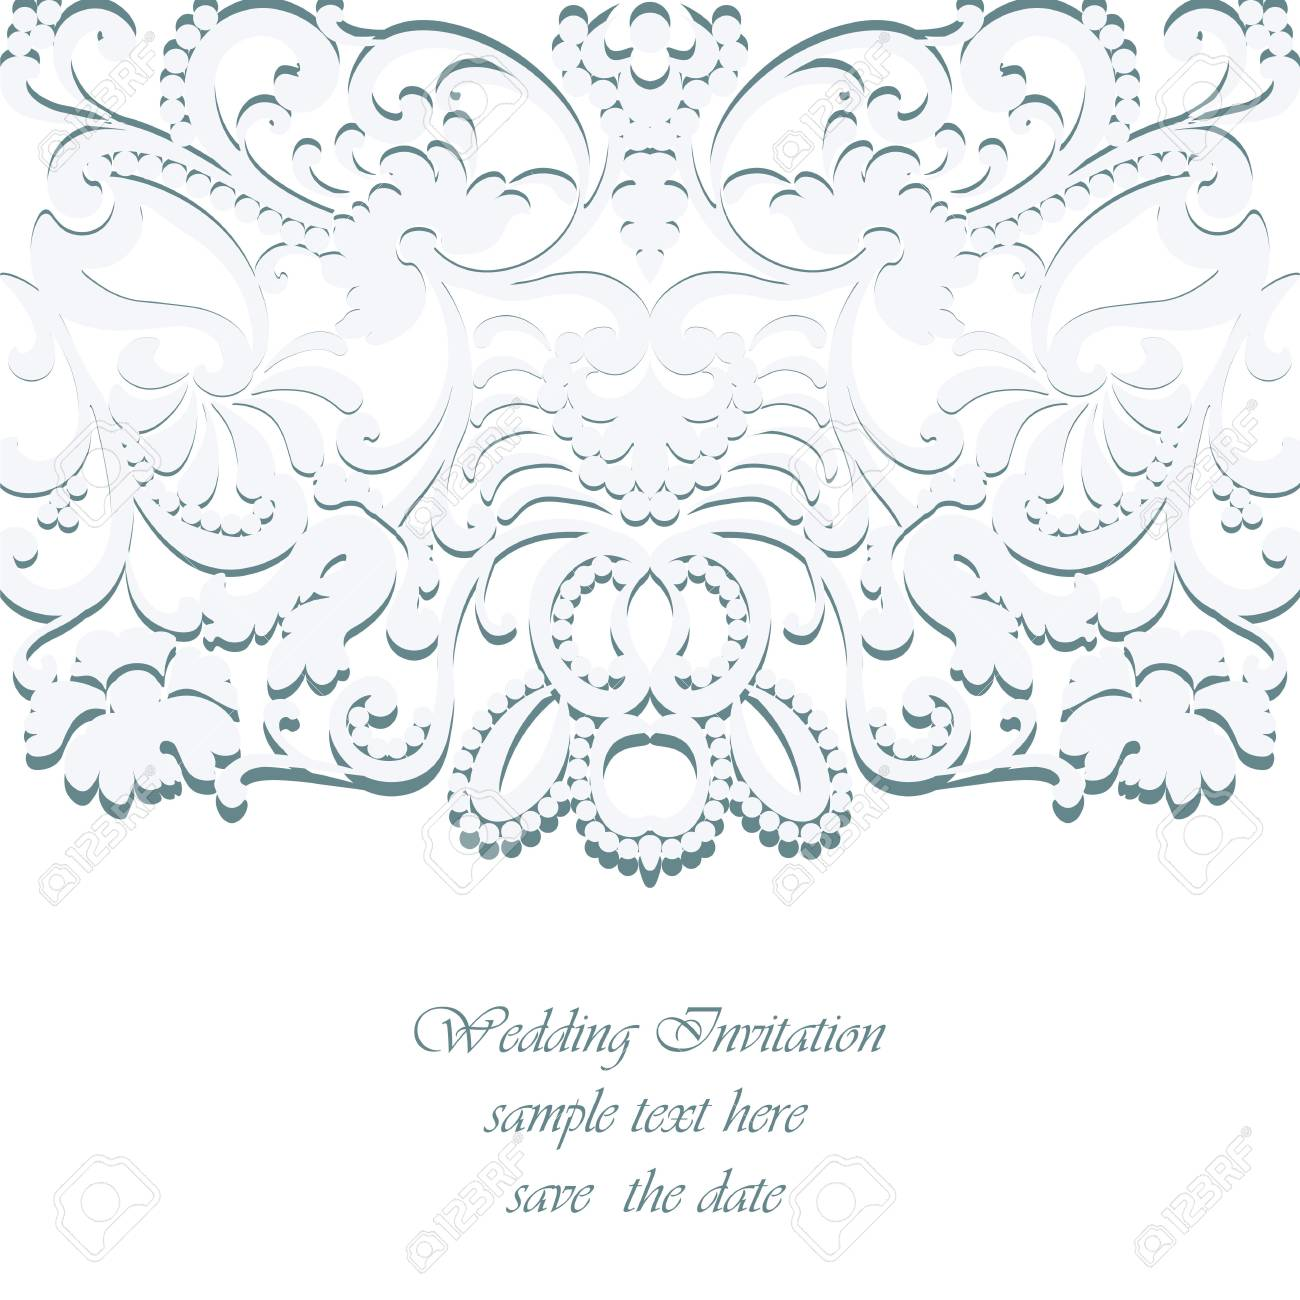 Vector vintage classic wedding invitation card imperial style floral ornament background for design wedding invitations greeting cards wallpaper serenity blue color stopboris Image collections